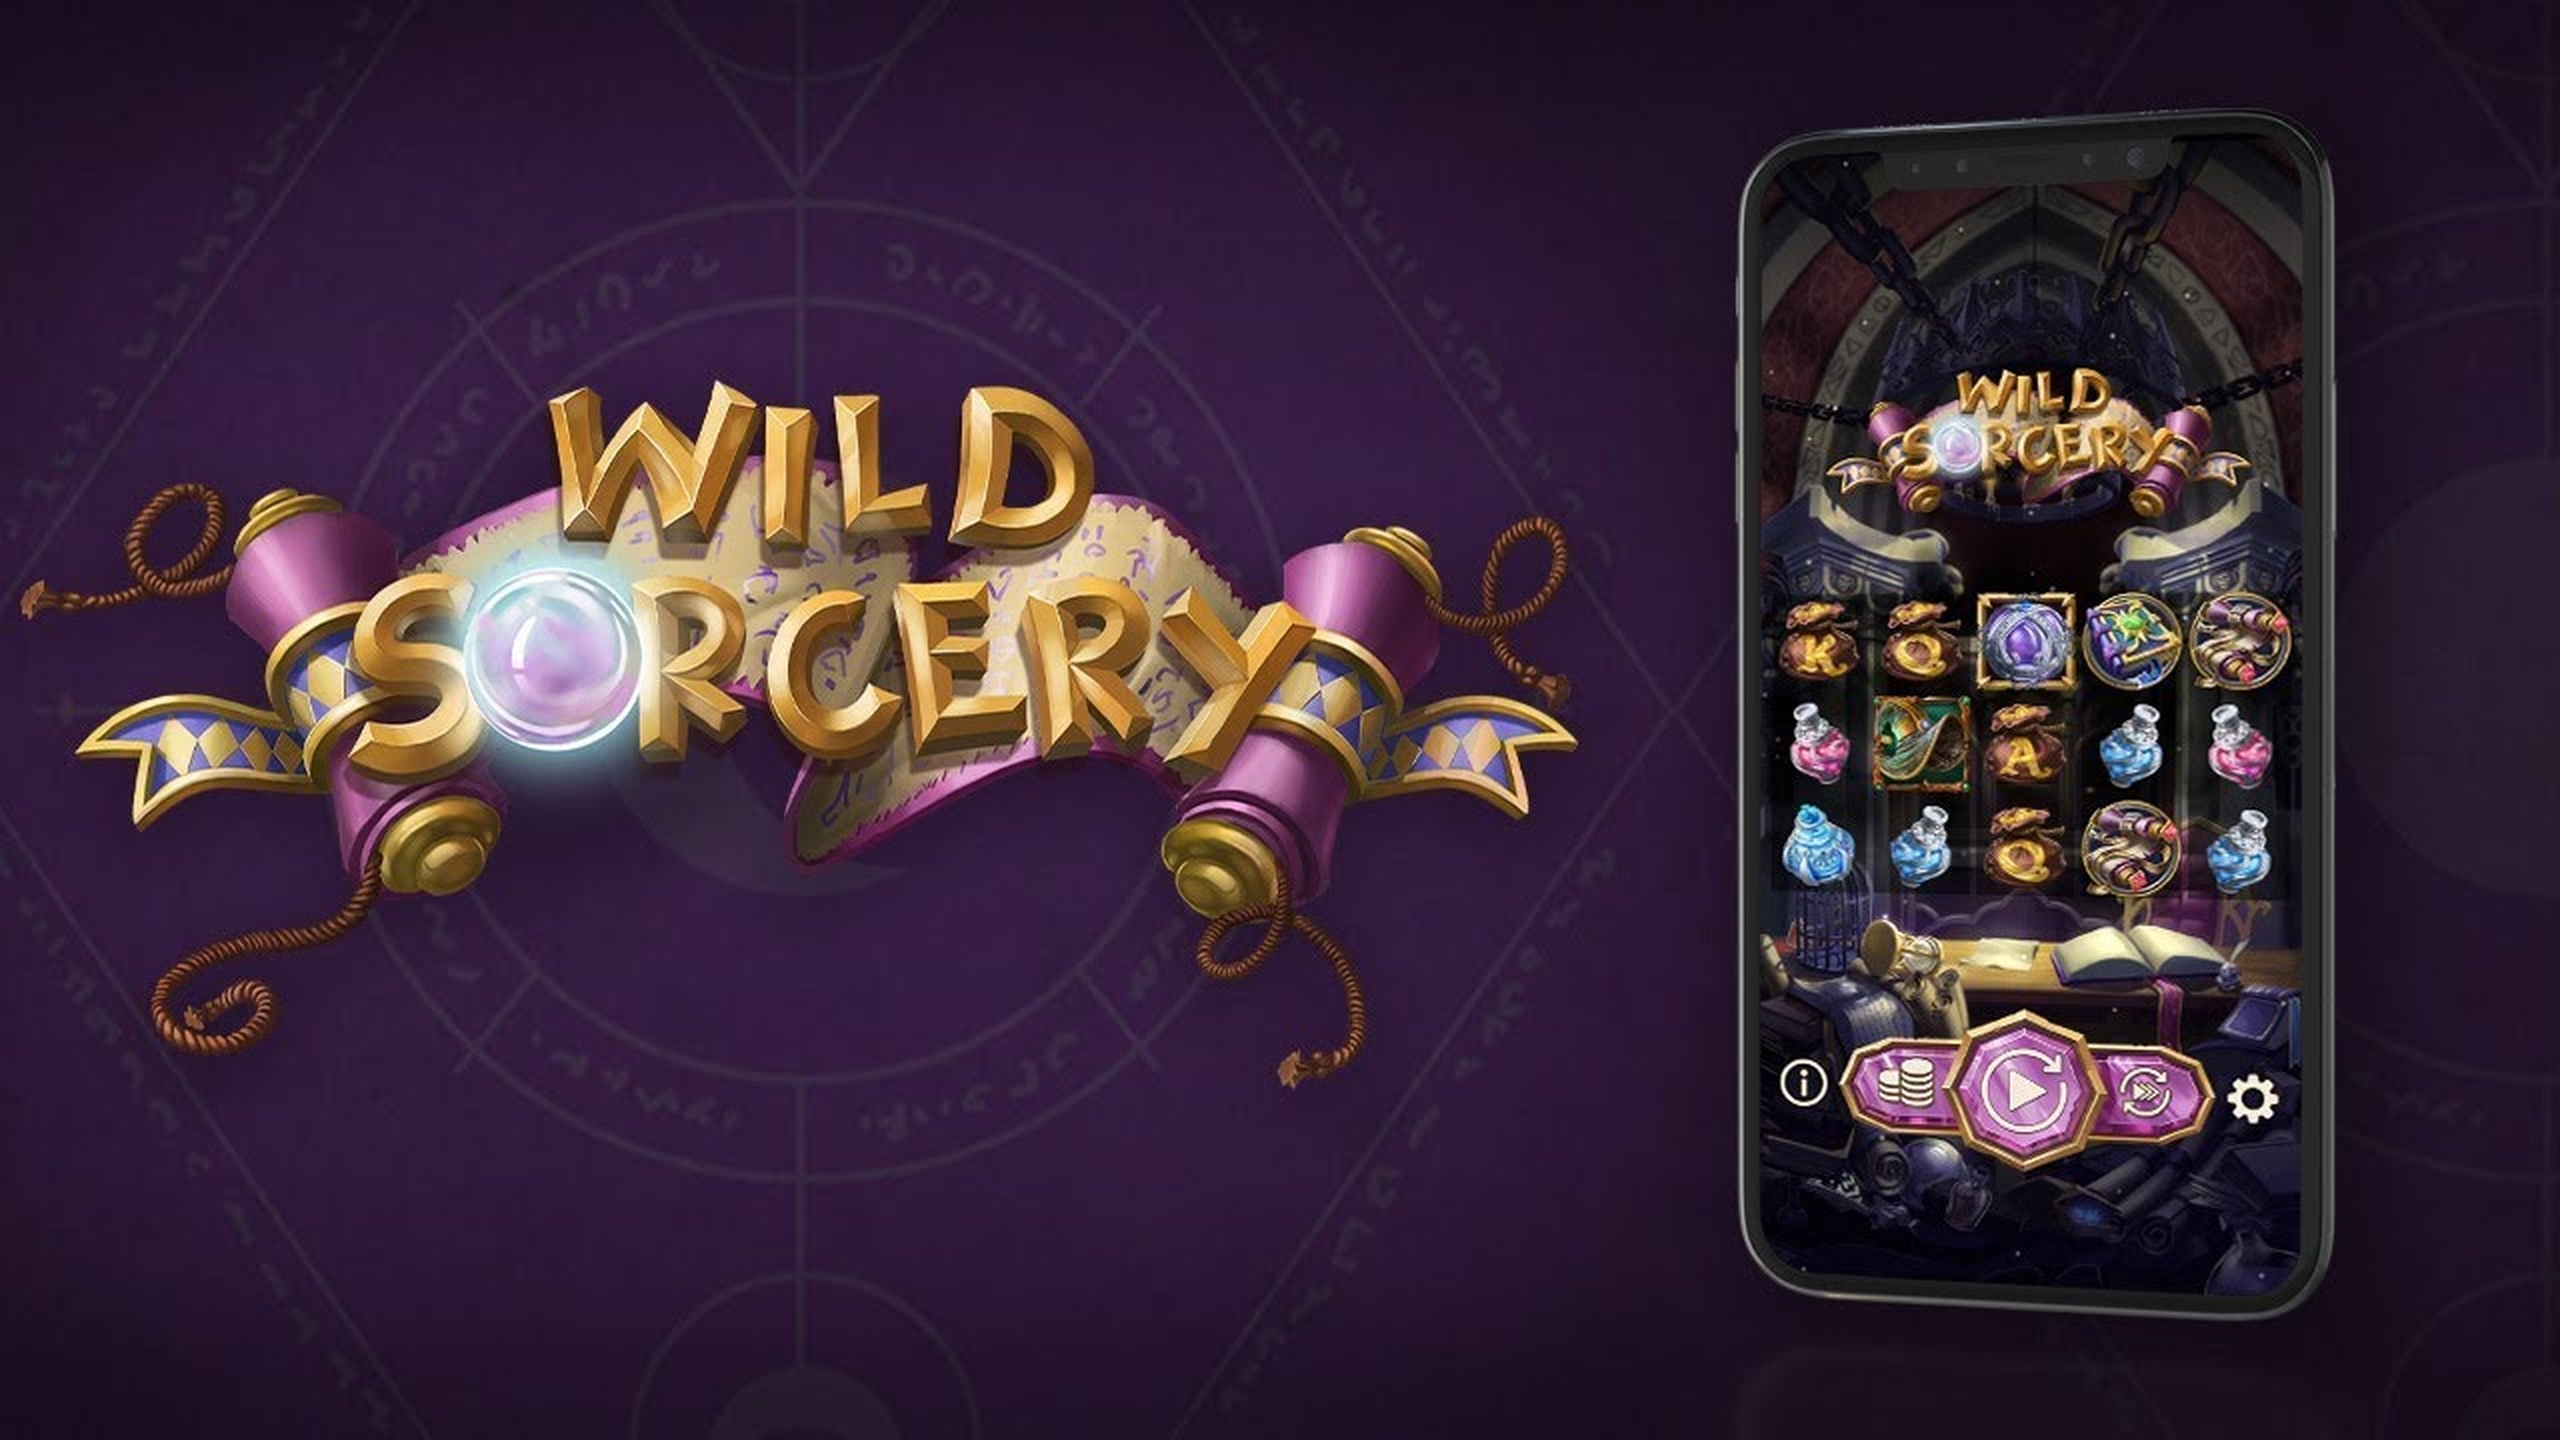 Wild Sorcery Online Slot Demo Game by OneTouch Games